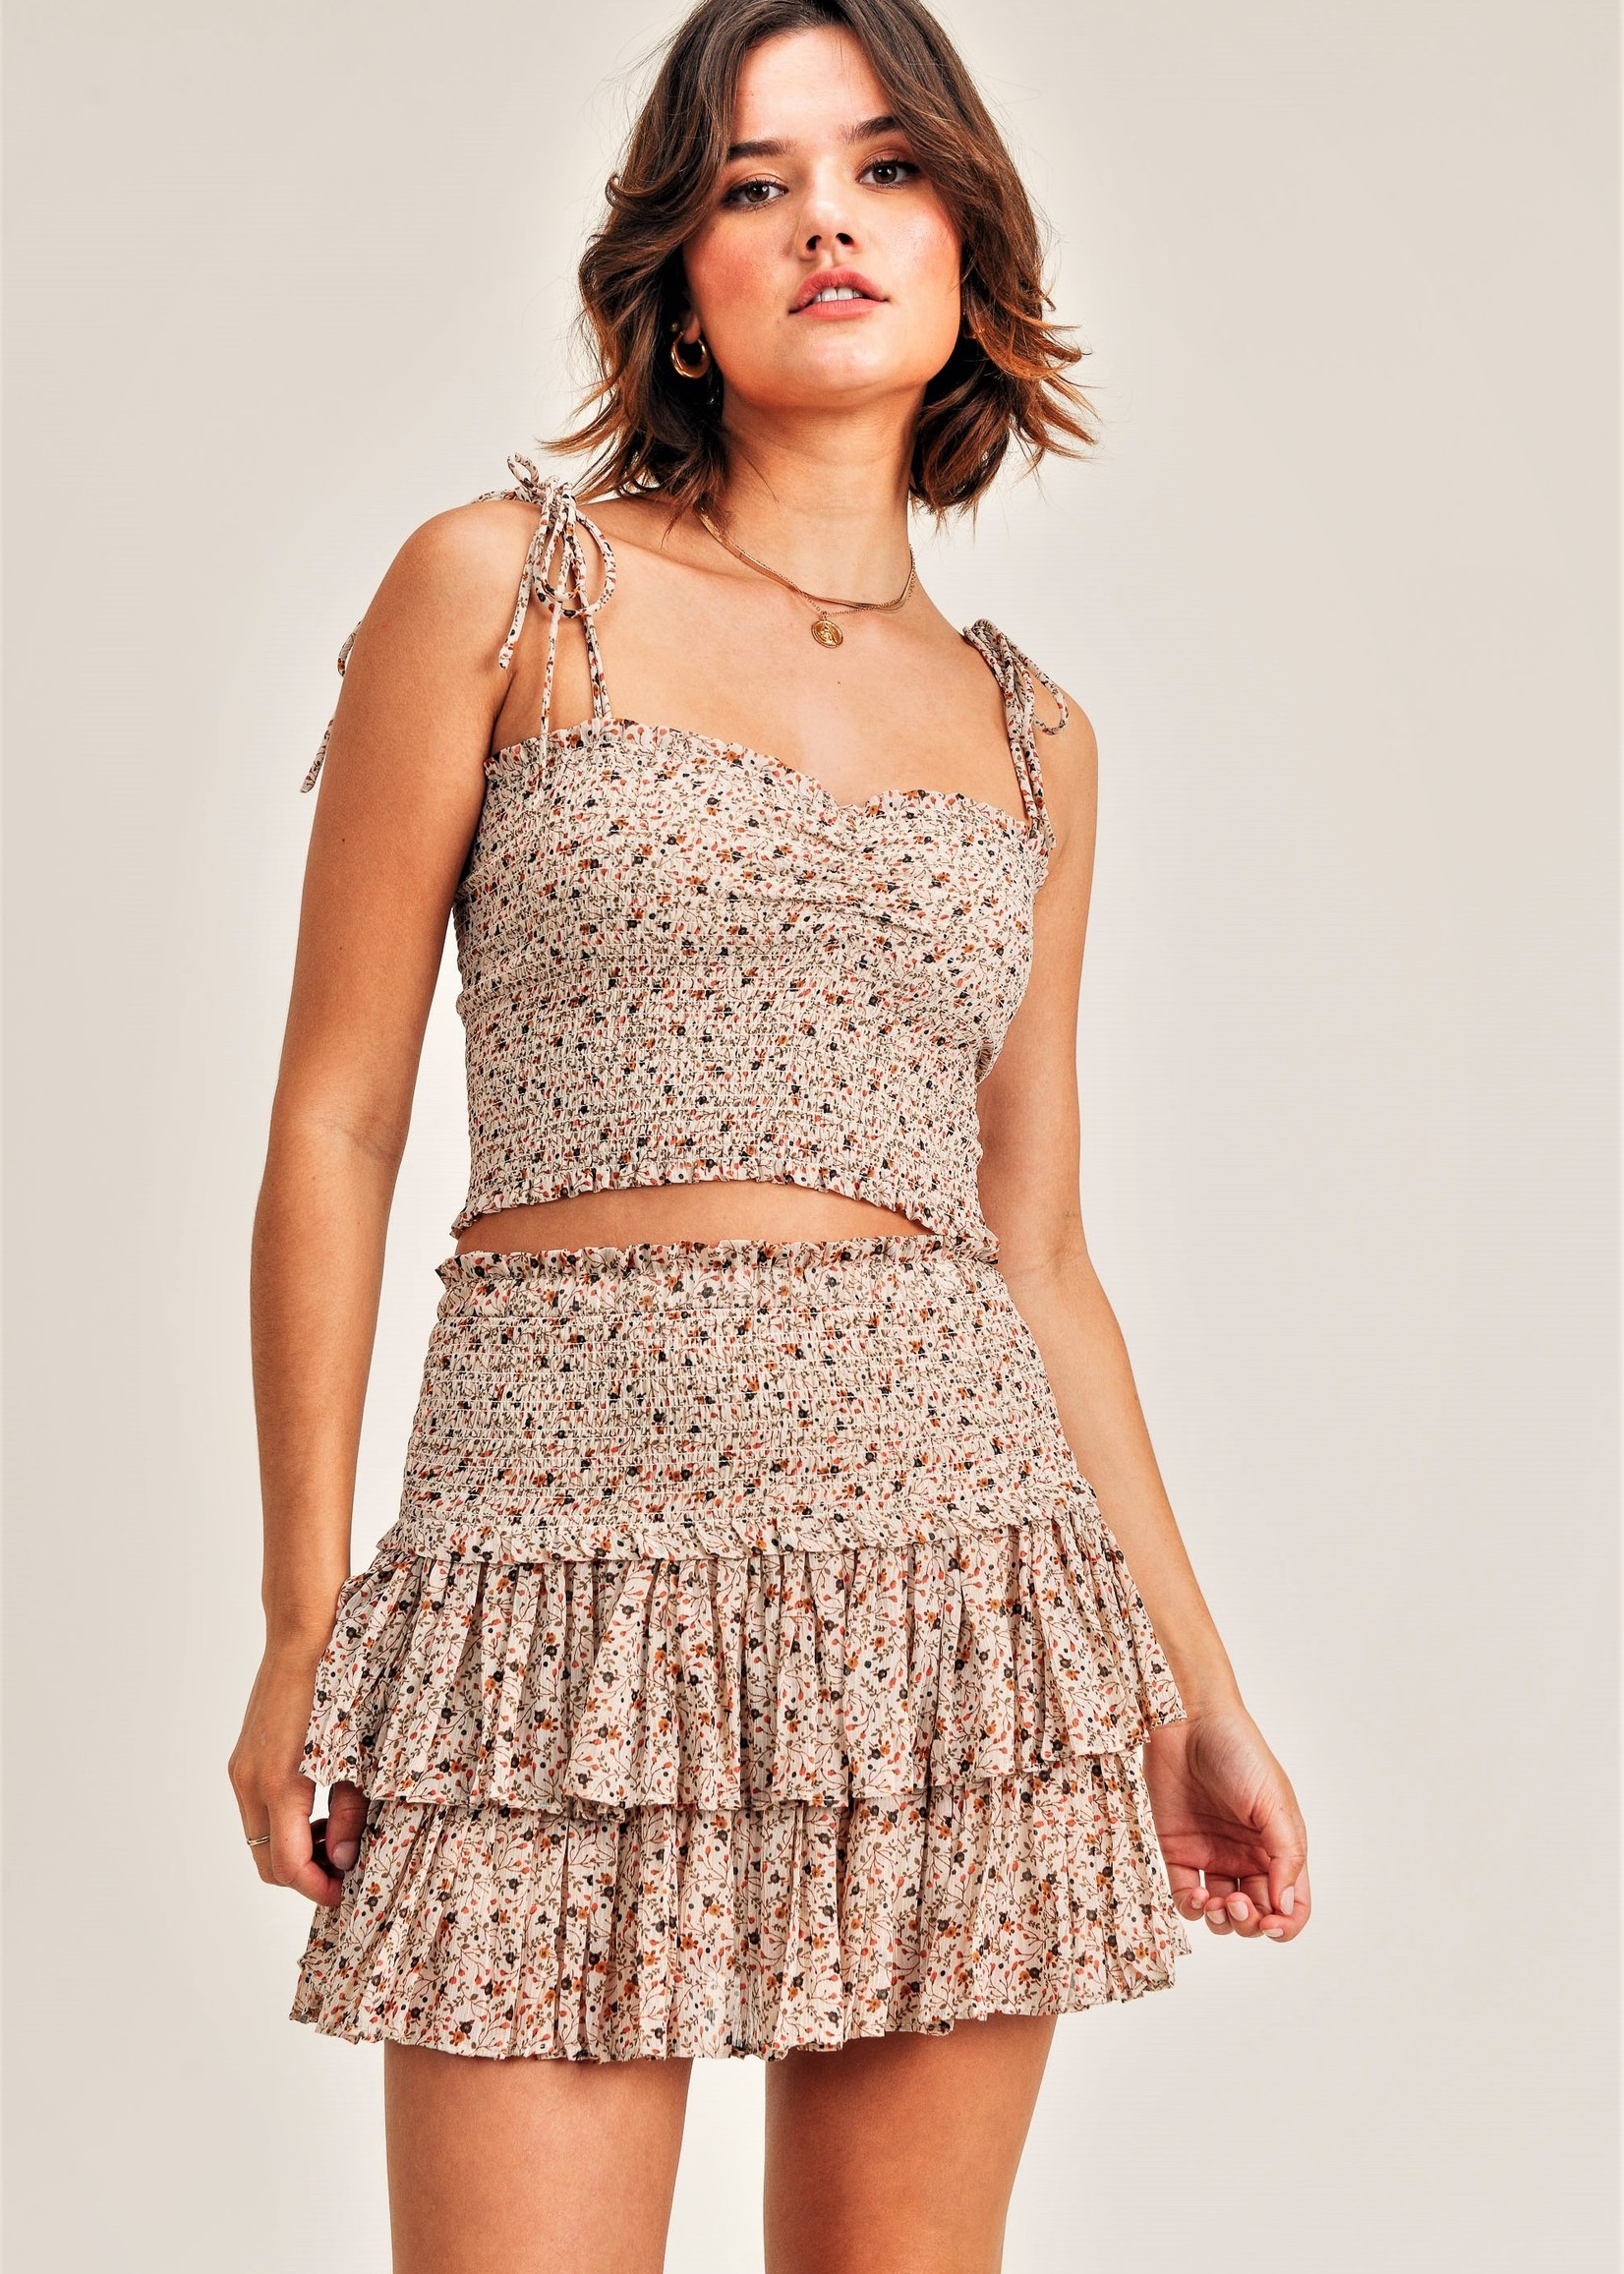 Reset by jane Ivory Floral Smocked Top